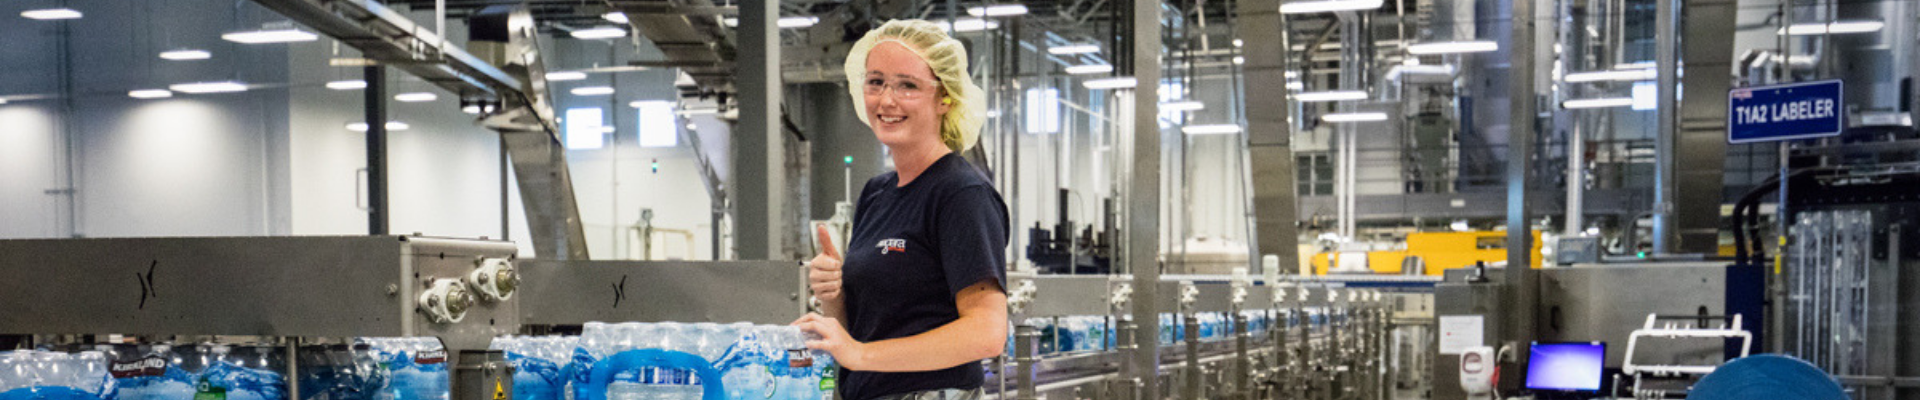 niagara-bottling-LLC-careers-banner